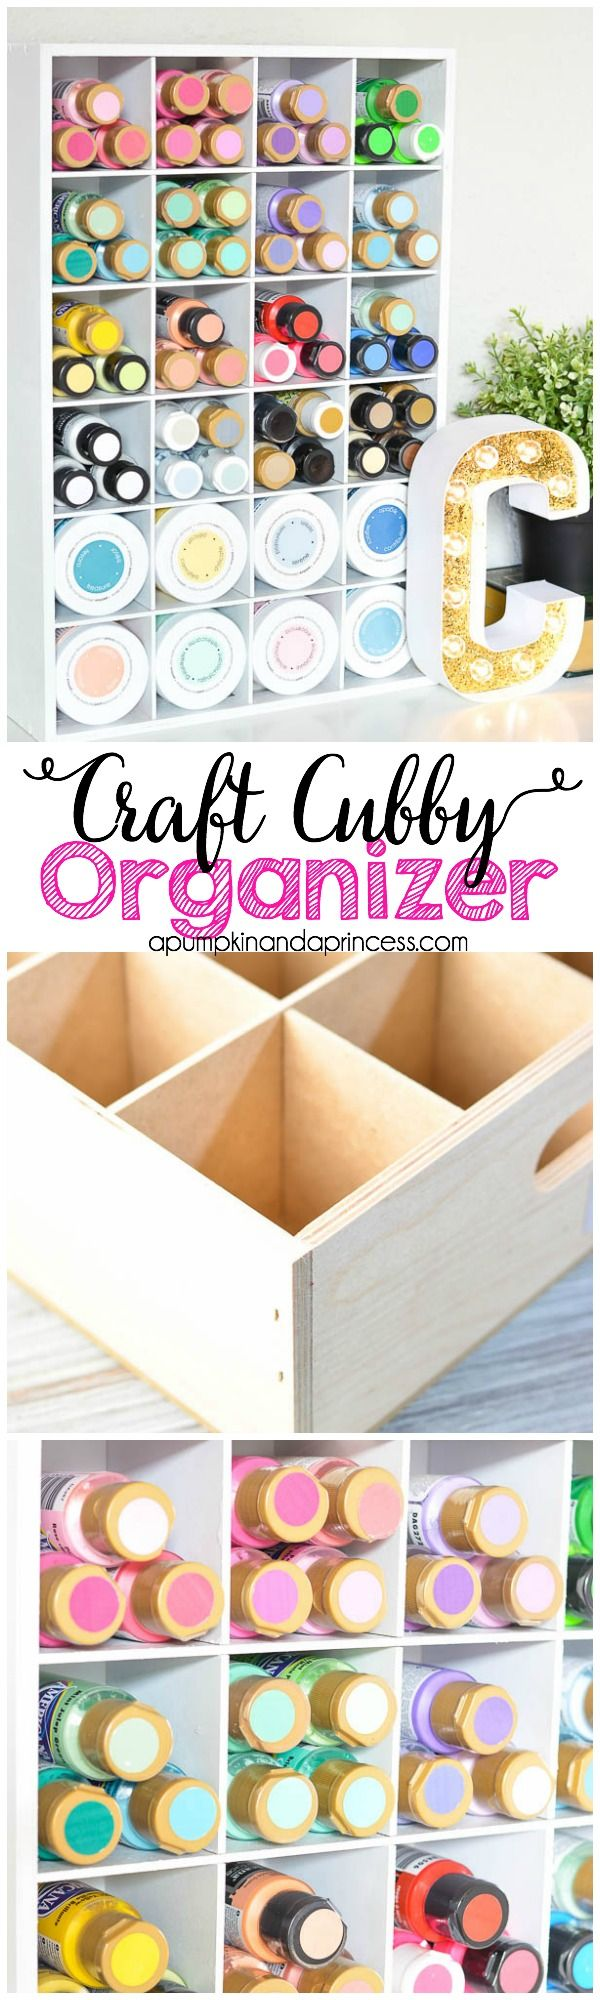 Craft Cubby Organizer by @crystalowens